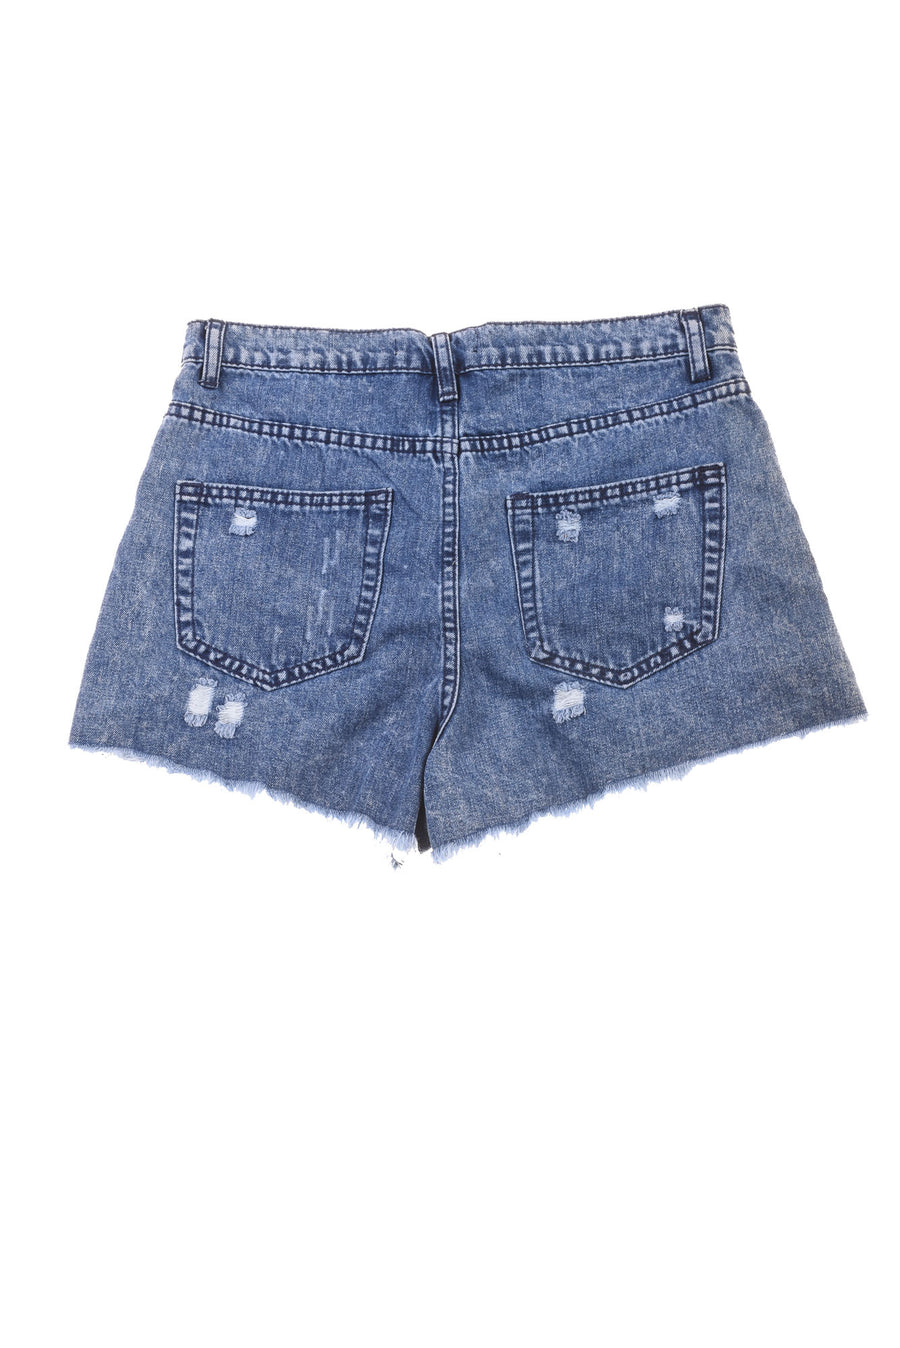 NEW Forever 21 Women's Shorts 27 Blue